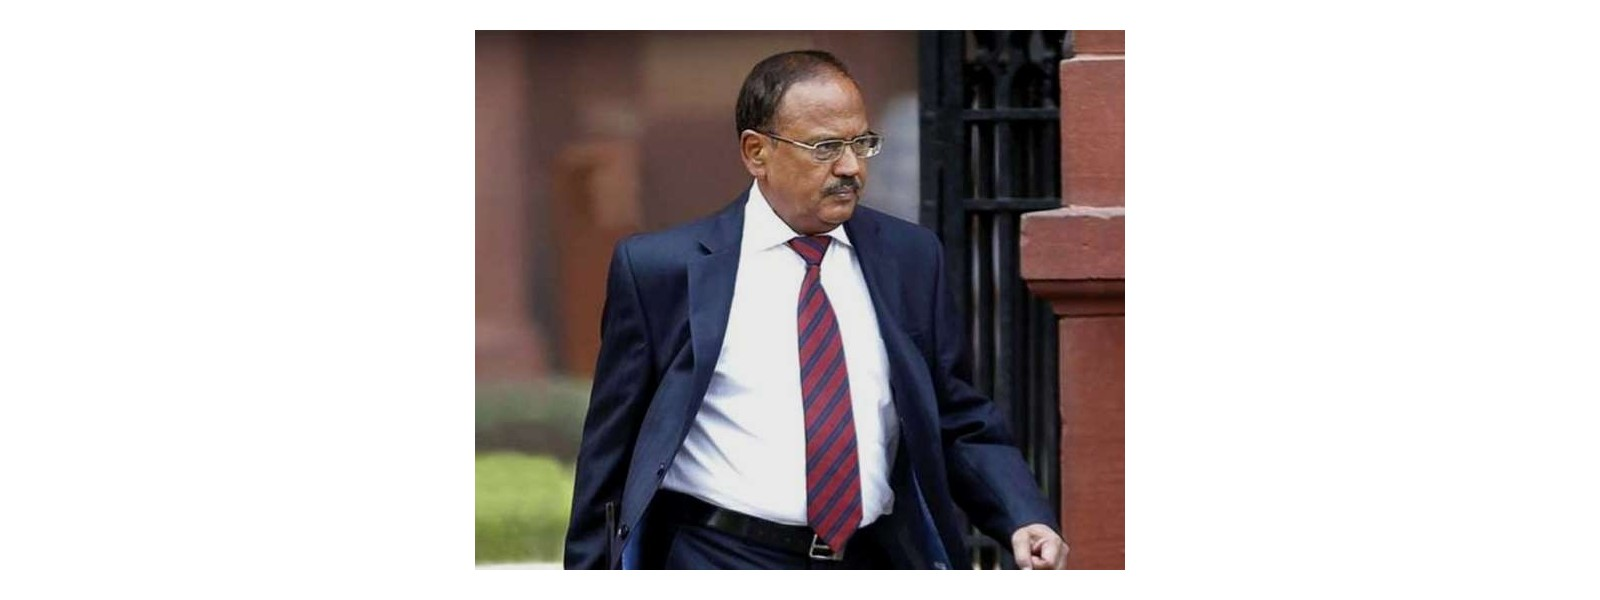 Indian National Security Adviser Ajit Doval to visit SL on Friday (27)